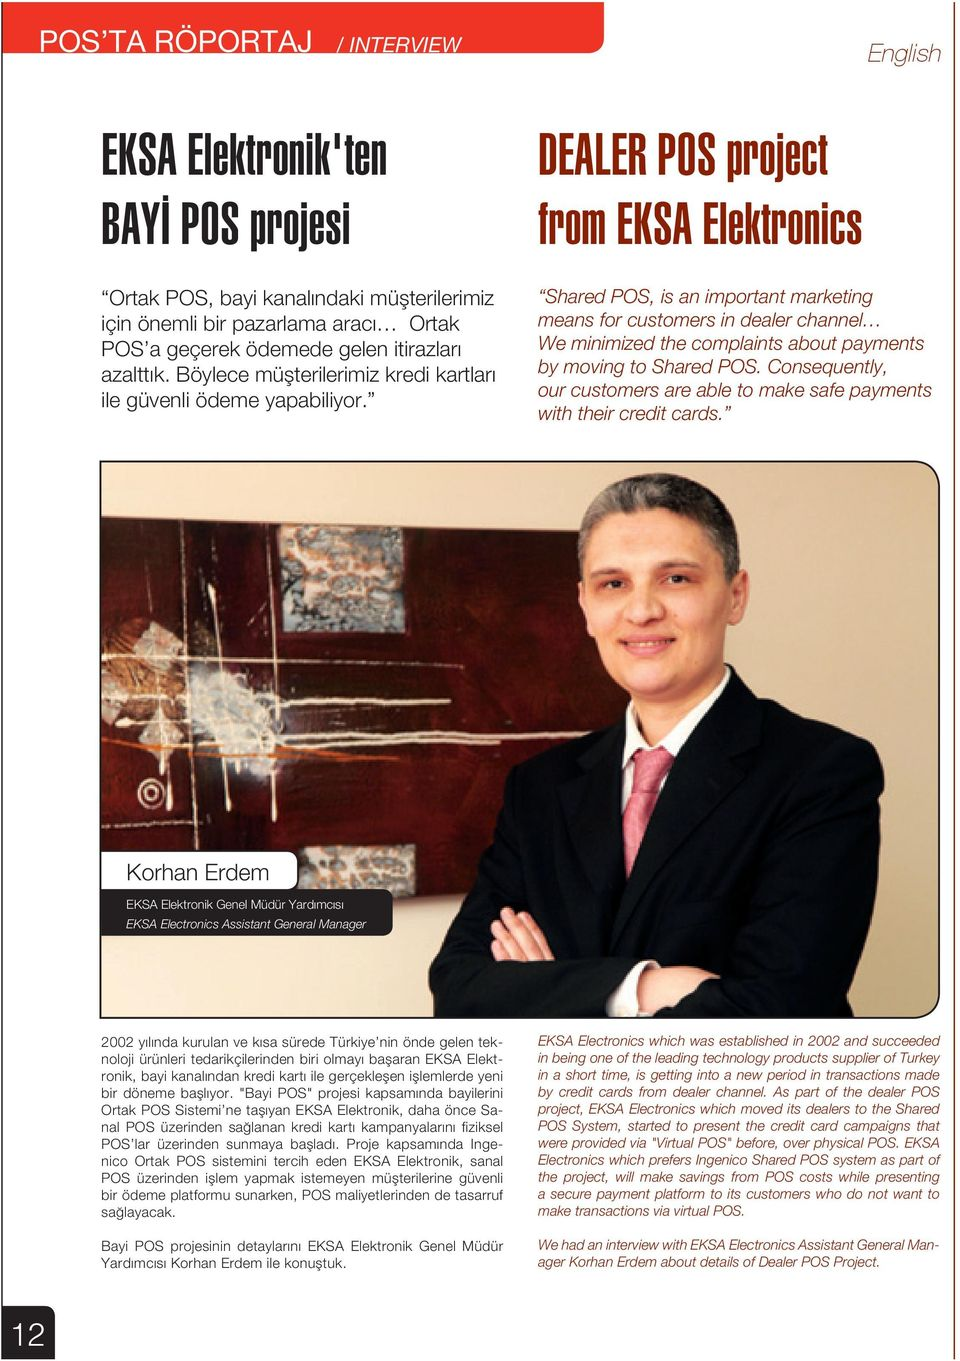 DEALER POS project from EKSA Elektronics Shared POS, is an important marketing means for customers in dealer channel We minimized the complaints about payments by moving to Shared POS.